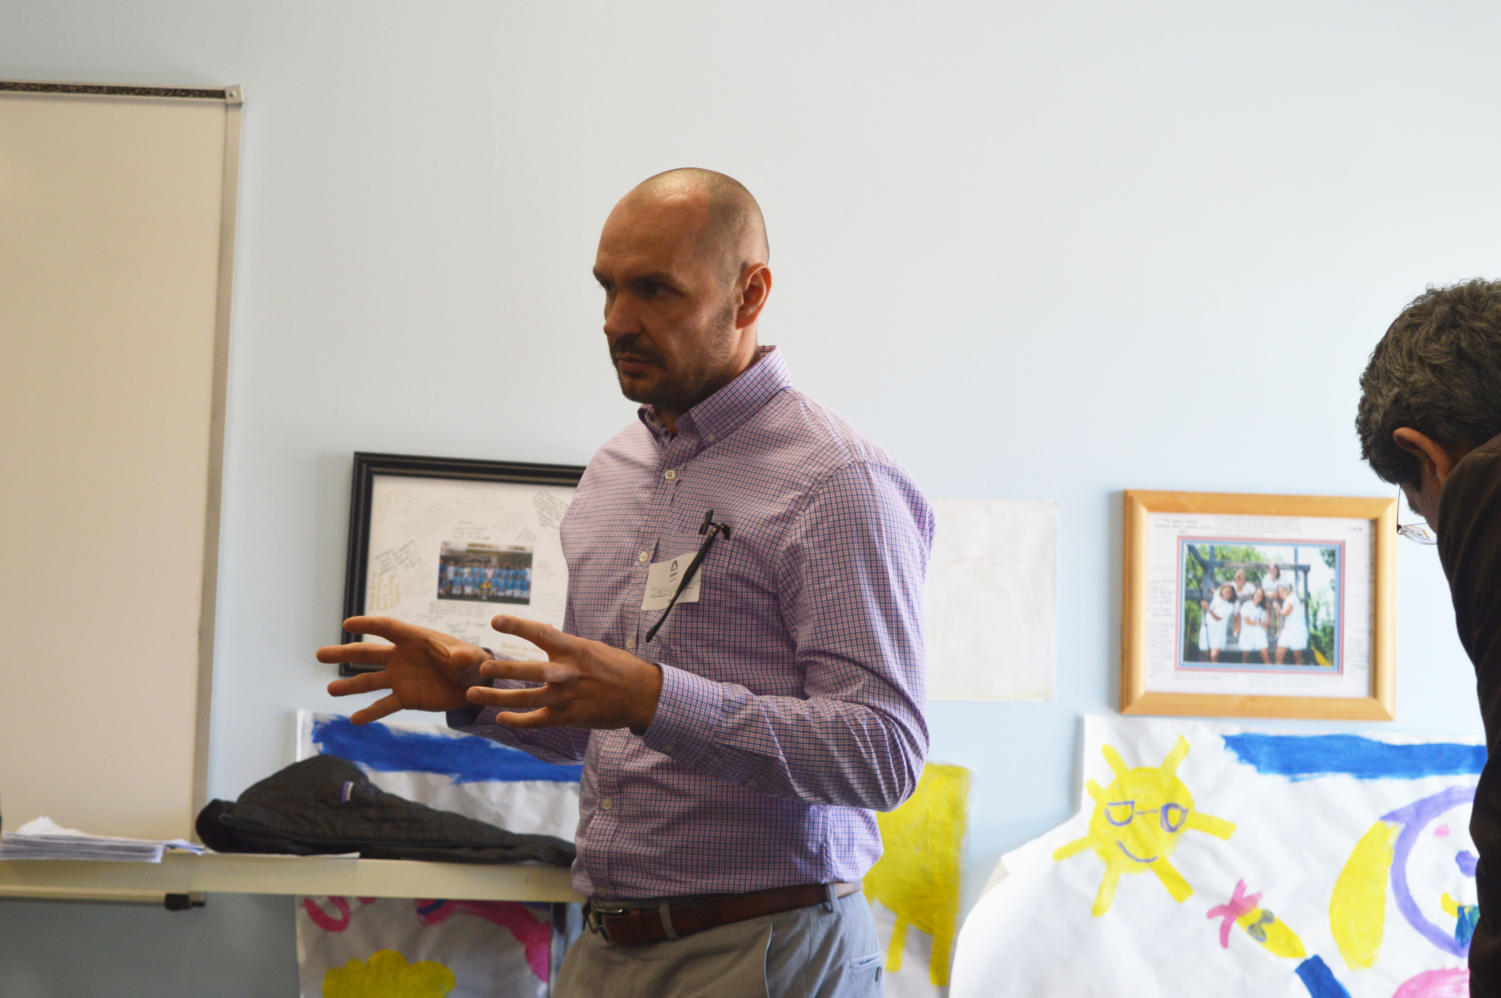 """Explaining history while describing his own culture, Dennis Nasufovic speaks to social studies teacher Jim Hermann's class. Nasufovic immigrated to St. Louis with his family in the 1990s where there is a current large Bosnian population. """"If you have a neighbor who is very loud watching the soccer game with a broken TV set outside, you know its a Bosnian whose team lost,"""" Nasufovic said."""